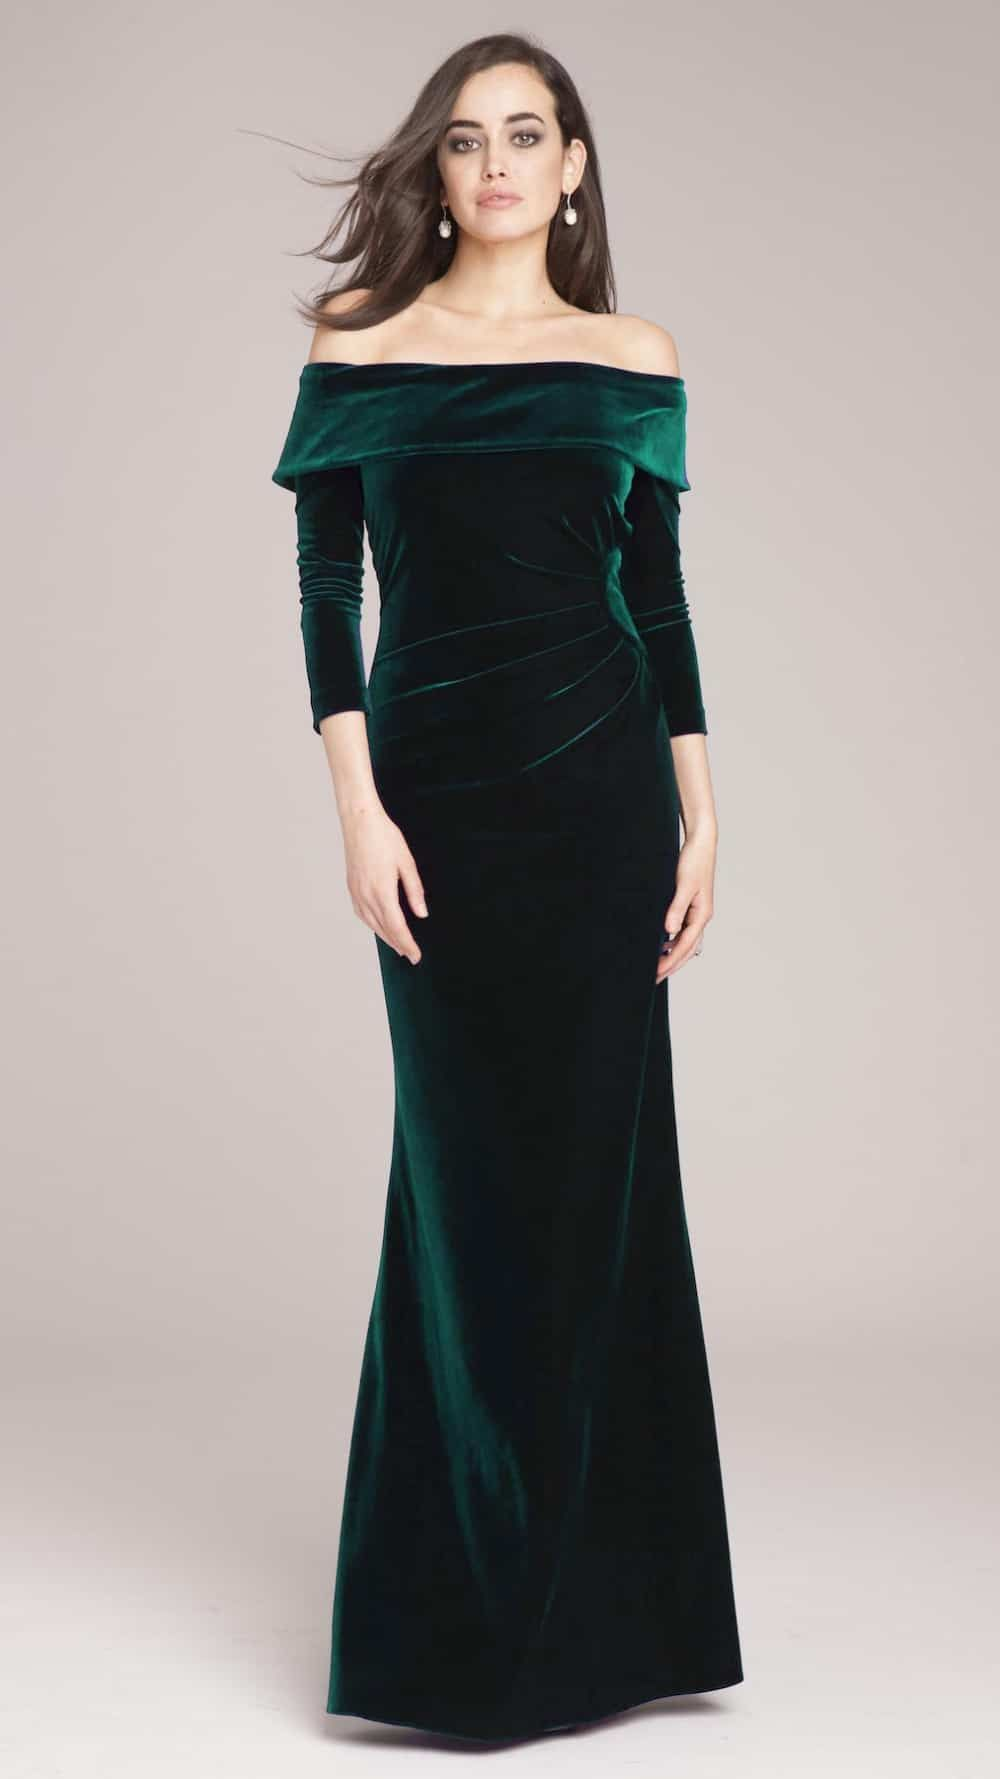 fa08f233f66 Off the Shoulder Emerald Green Velvet Gown in 2019